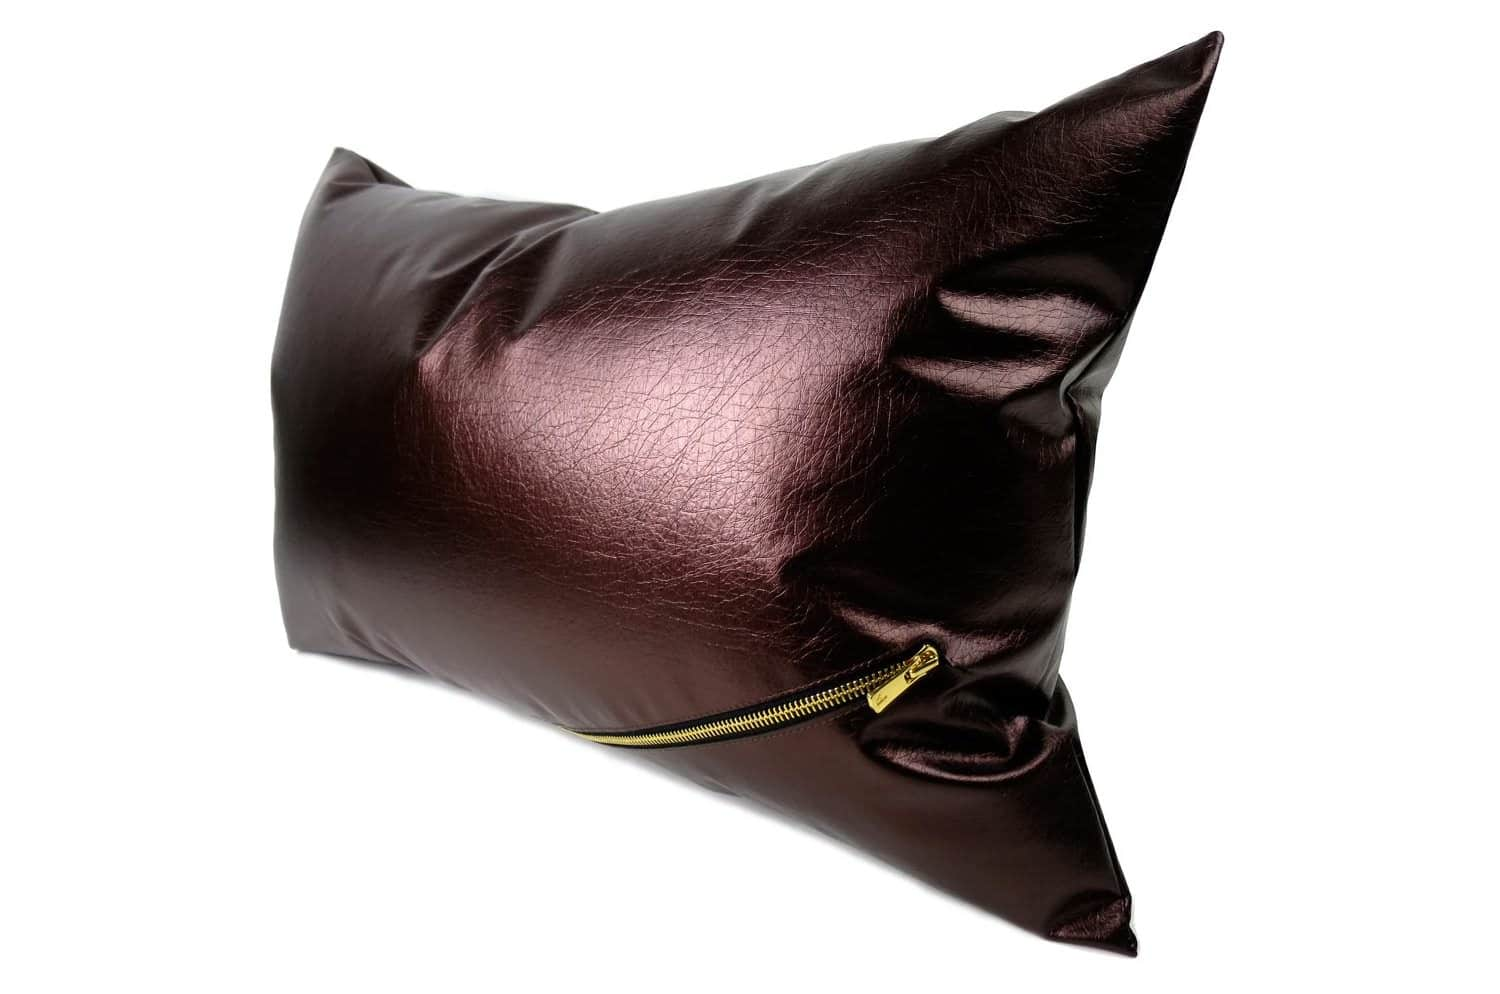 leather-wine-4530